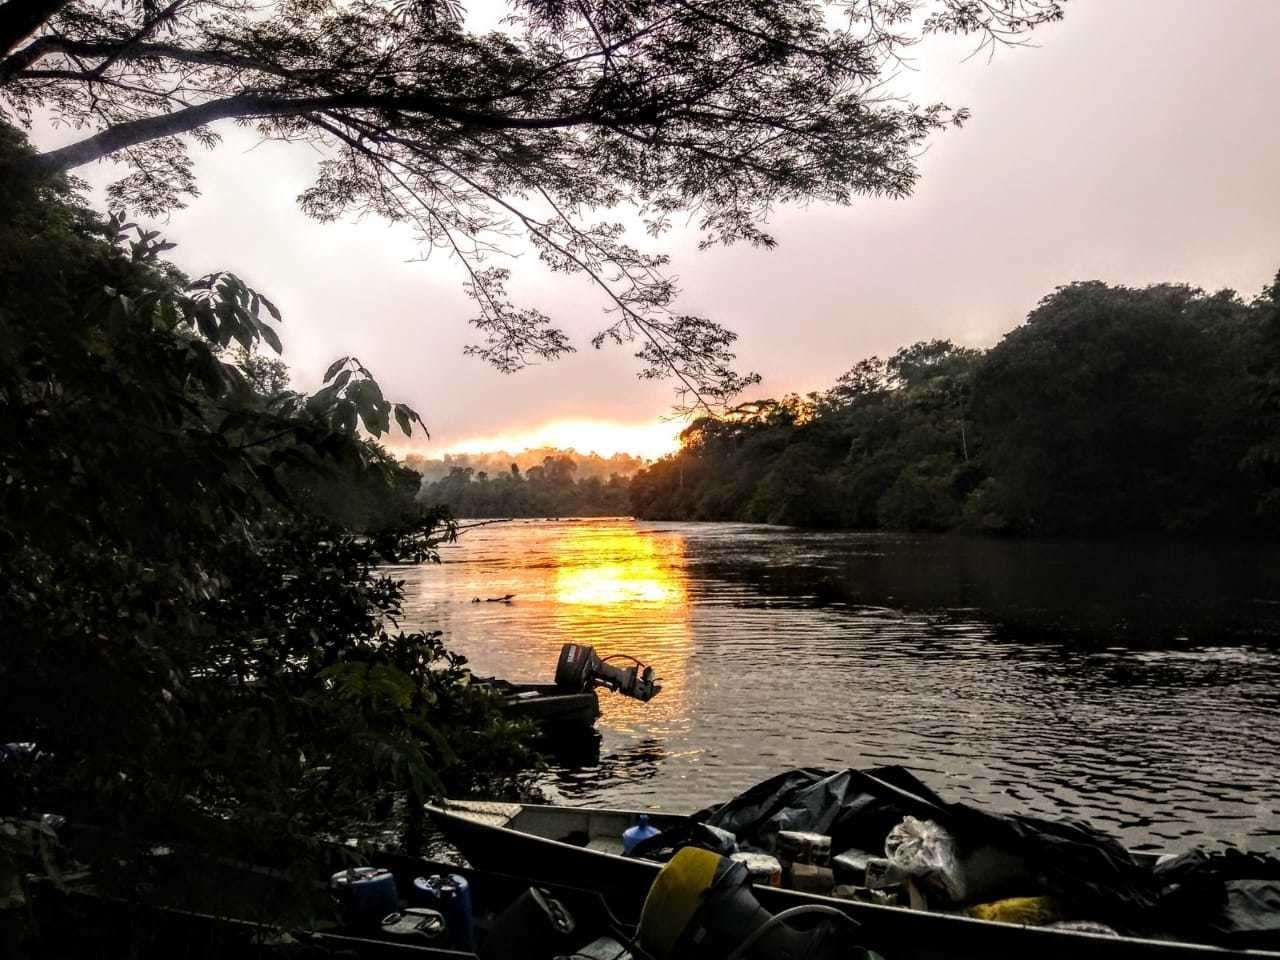 A sunset on the trip to find the Amazon's tallest tree. Picture: Rafael Aleixo (24806119)